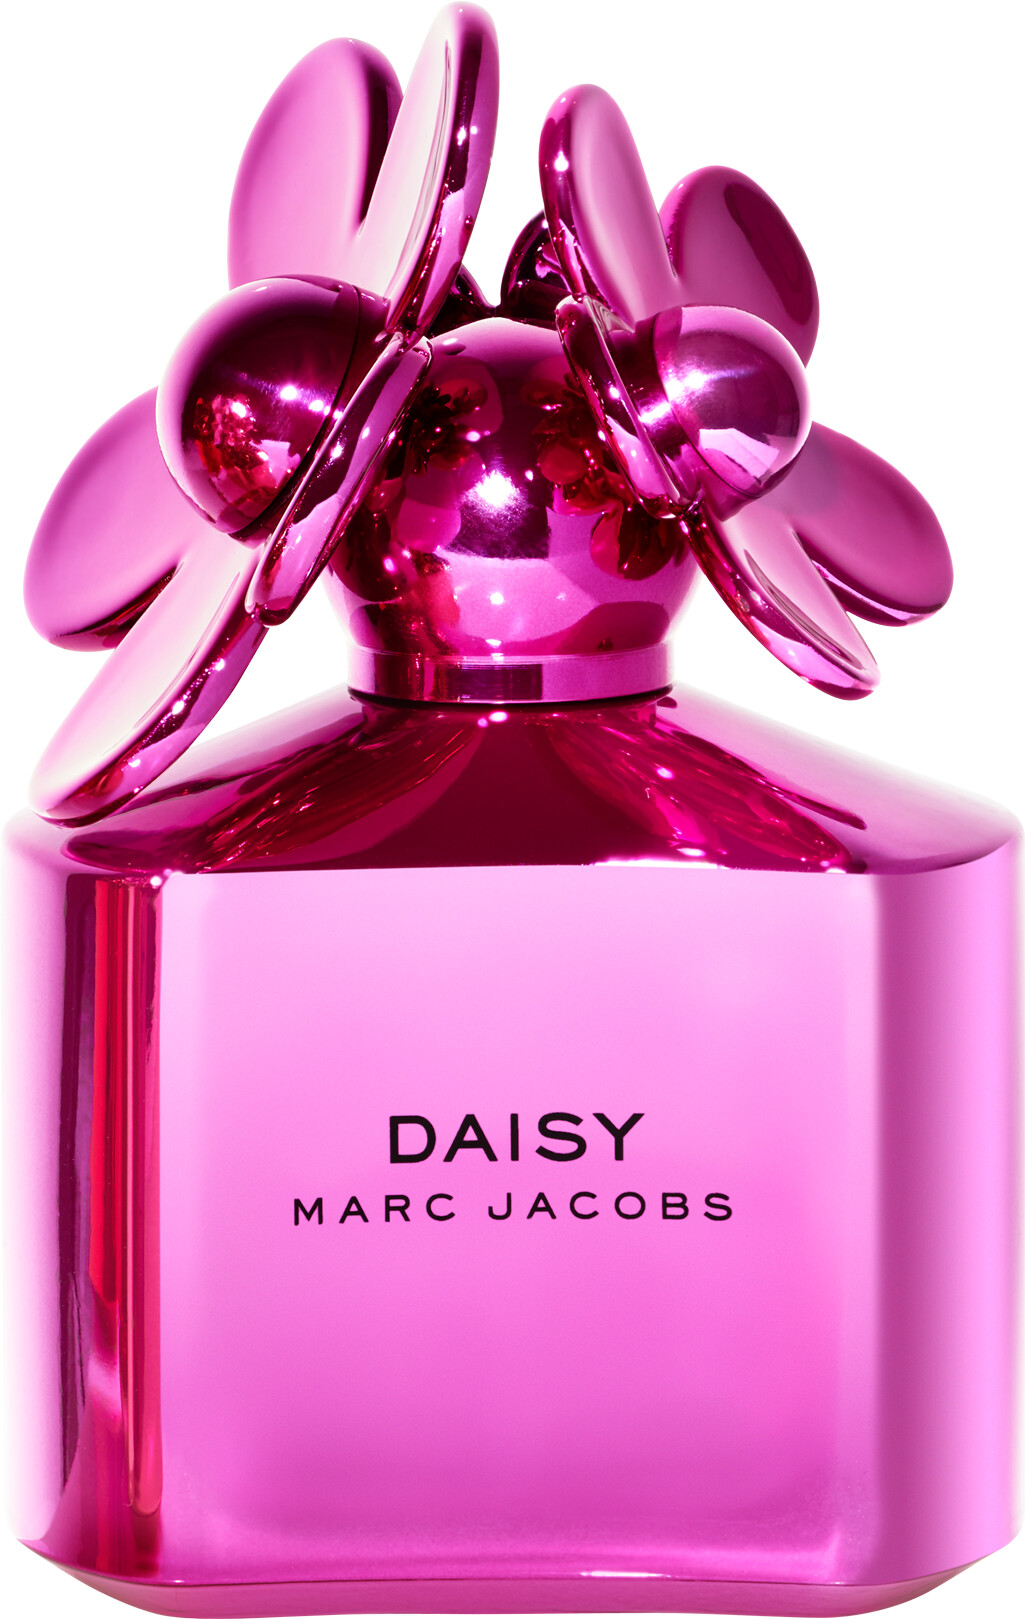 Marc Jacobs Daisy Shine Edition Eau de Toilette Spray 100ml Pink